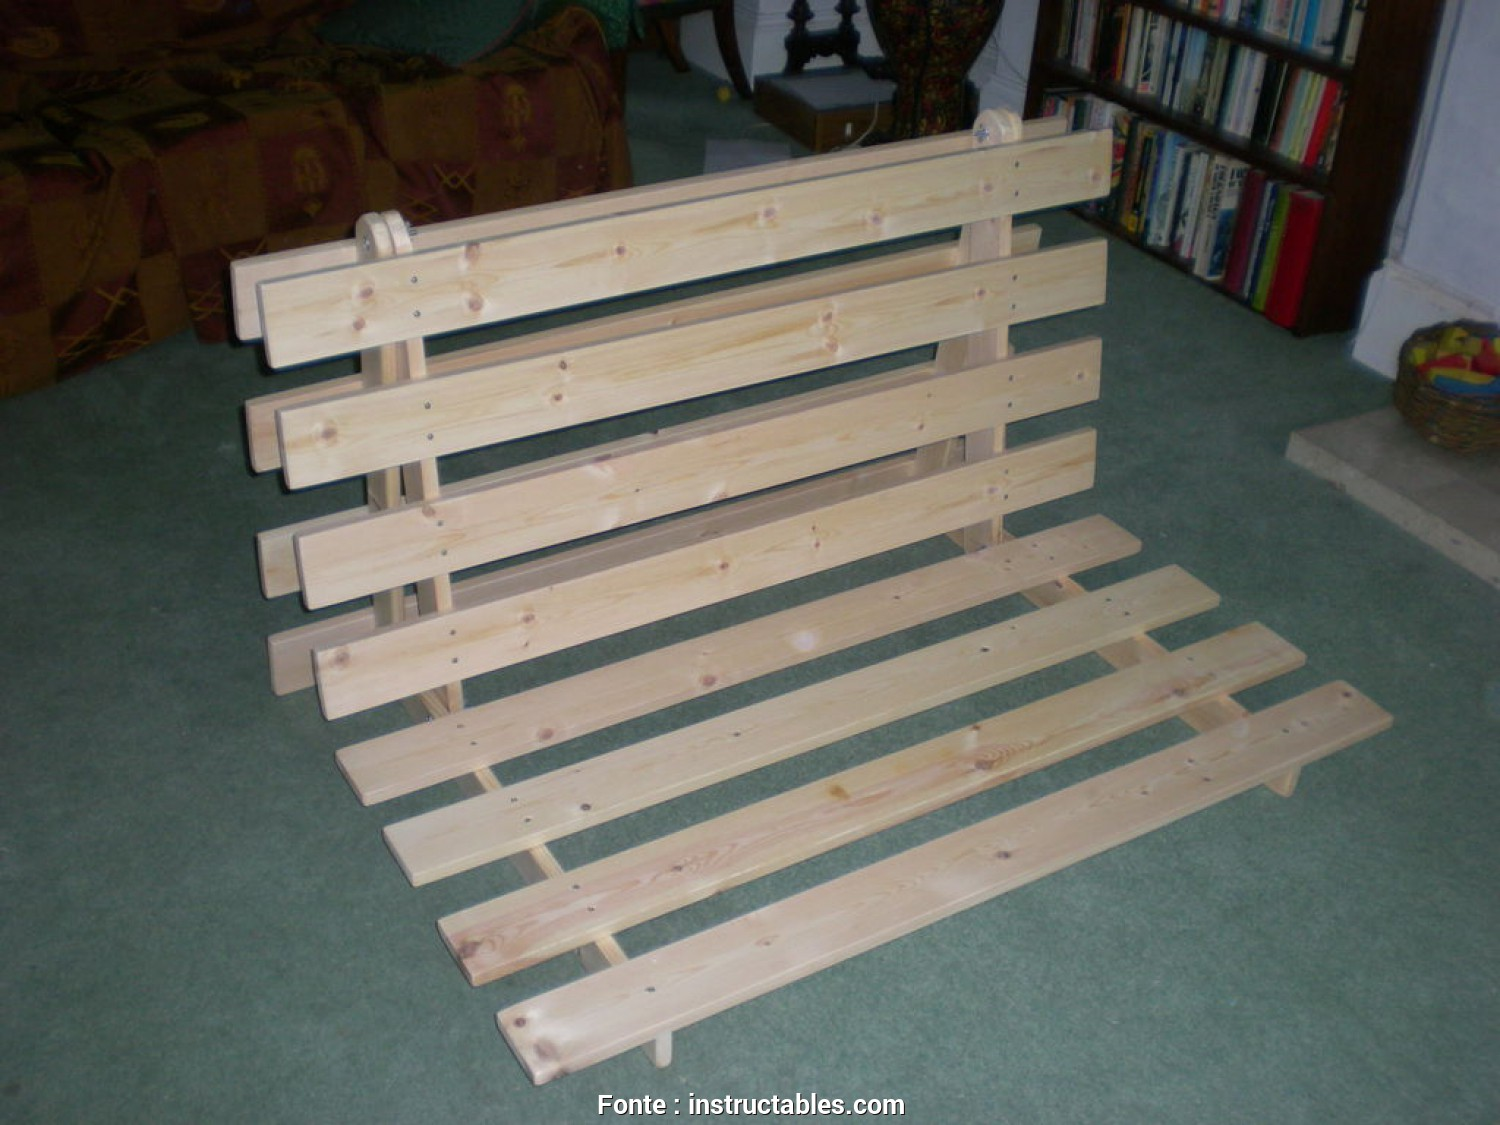 Ikea Futon Folding Instructions, Delizioso How To Make A Fold, Sofa/Futon/Bed Frame: 14 Steps (With Pictures)